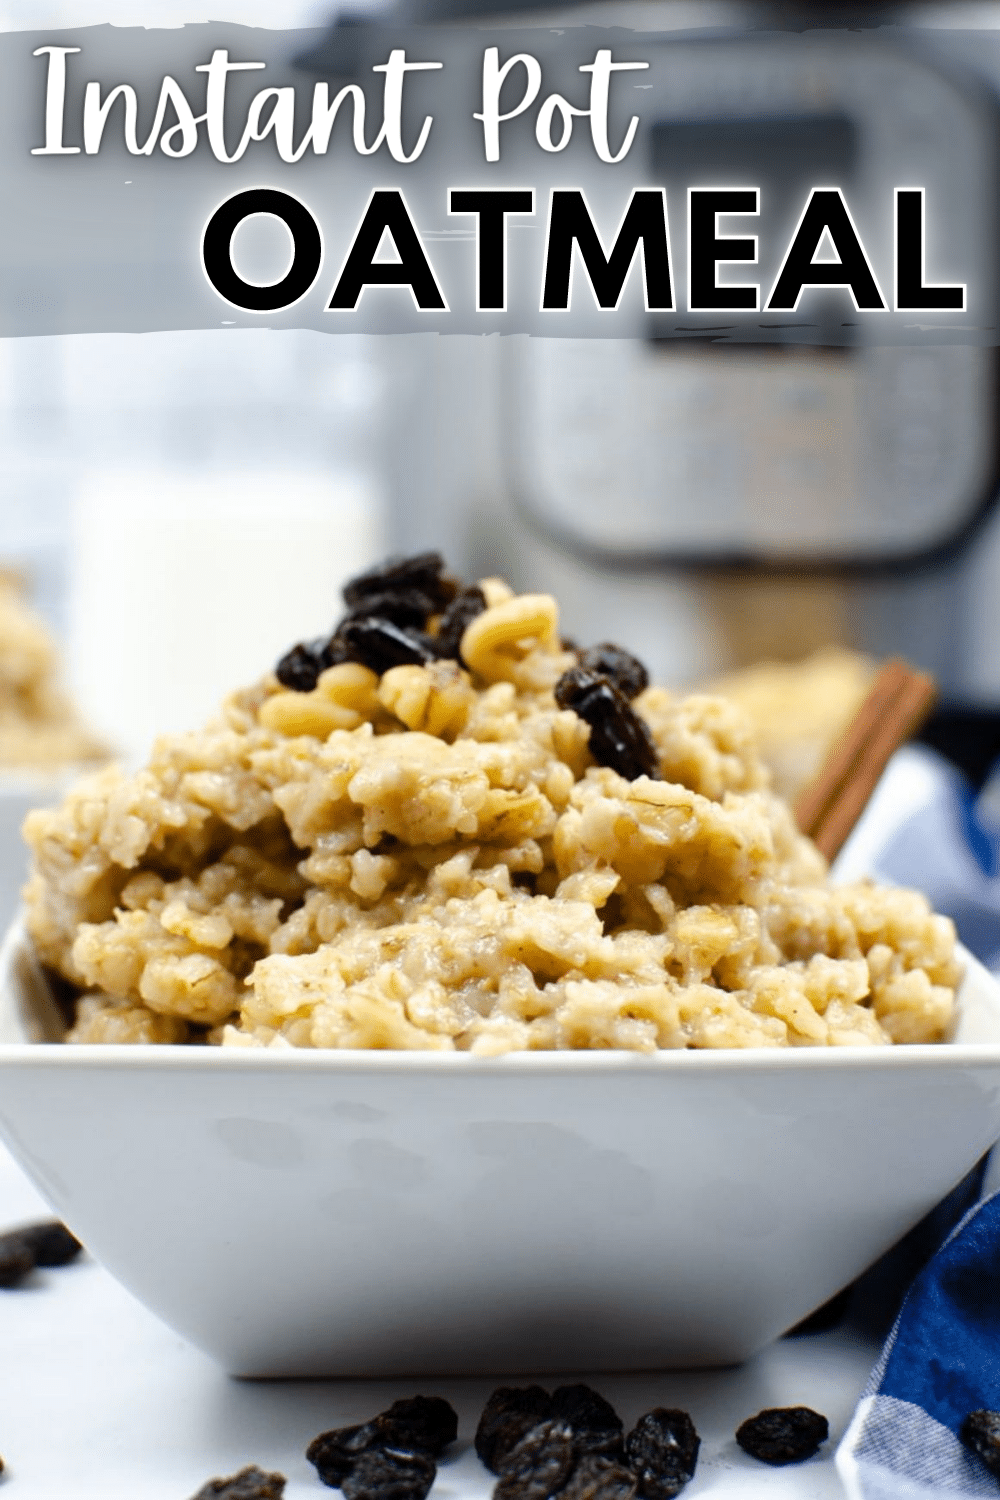 Instant Pot Oatmeal is perfect for busy mornings! This easy recipe cooks while you get ready for the day, making your morning less stressful. #instantpot #pressurecooker #oatmeal #breakfast #recipe via @wondermomwannab